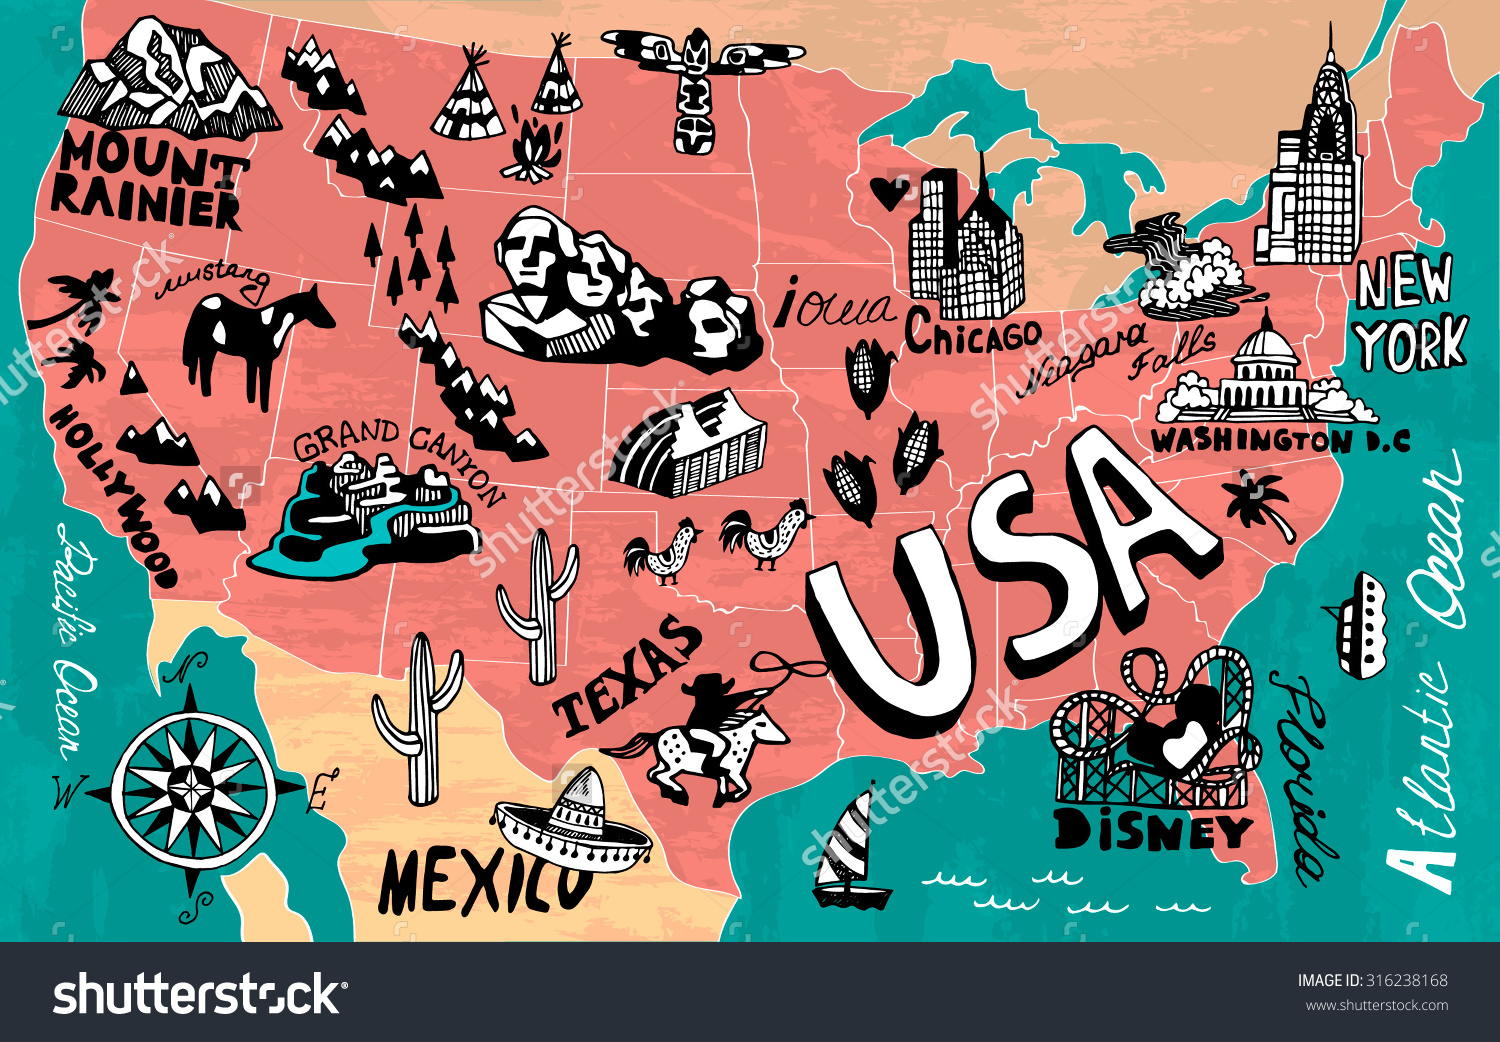 Road trip united states clipart banner black and white library Us road map clipart - ClipartFest banner black and white library